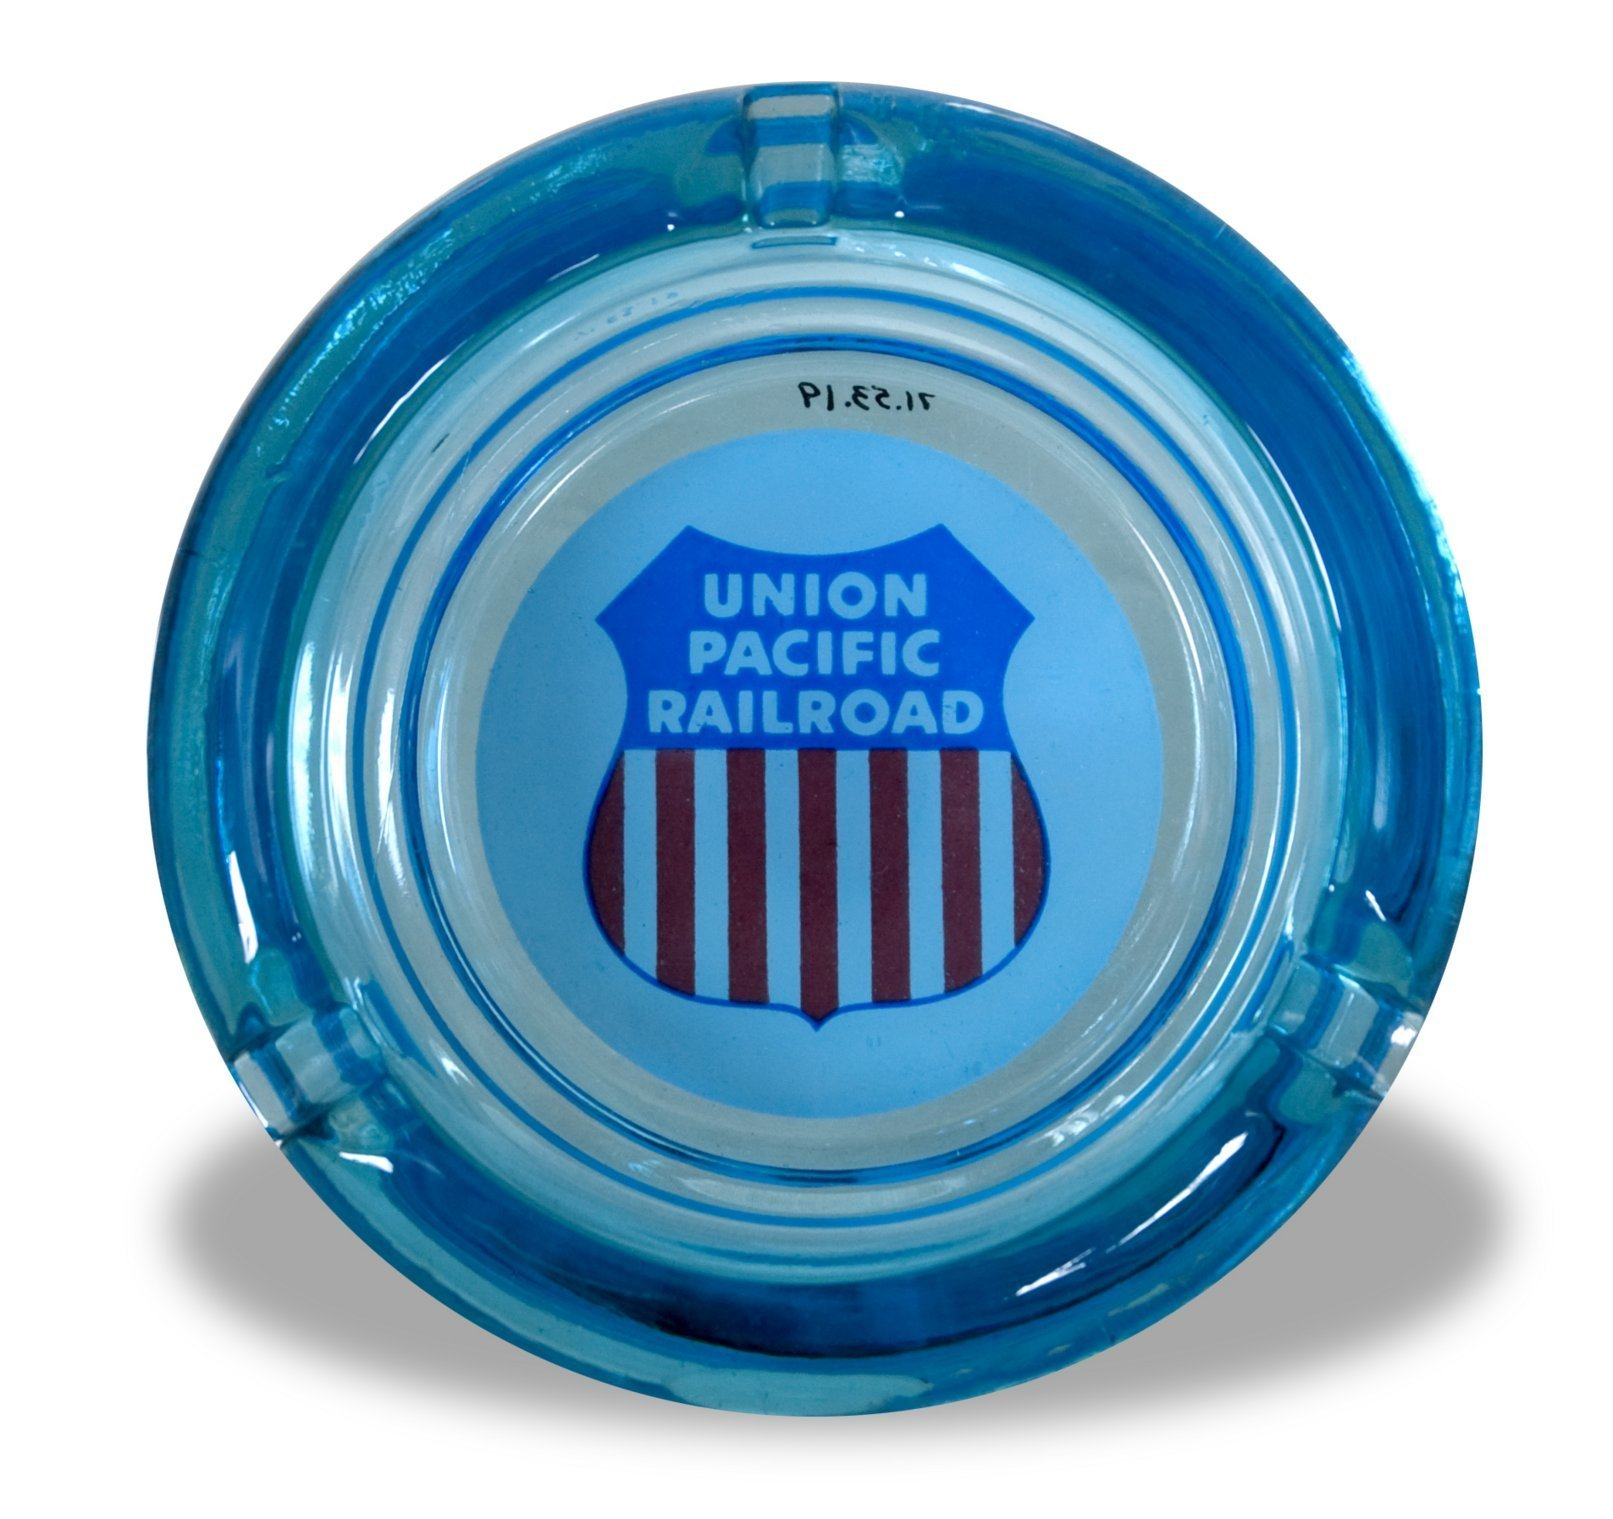 Union Pacific Railroad ashtray